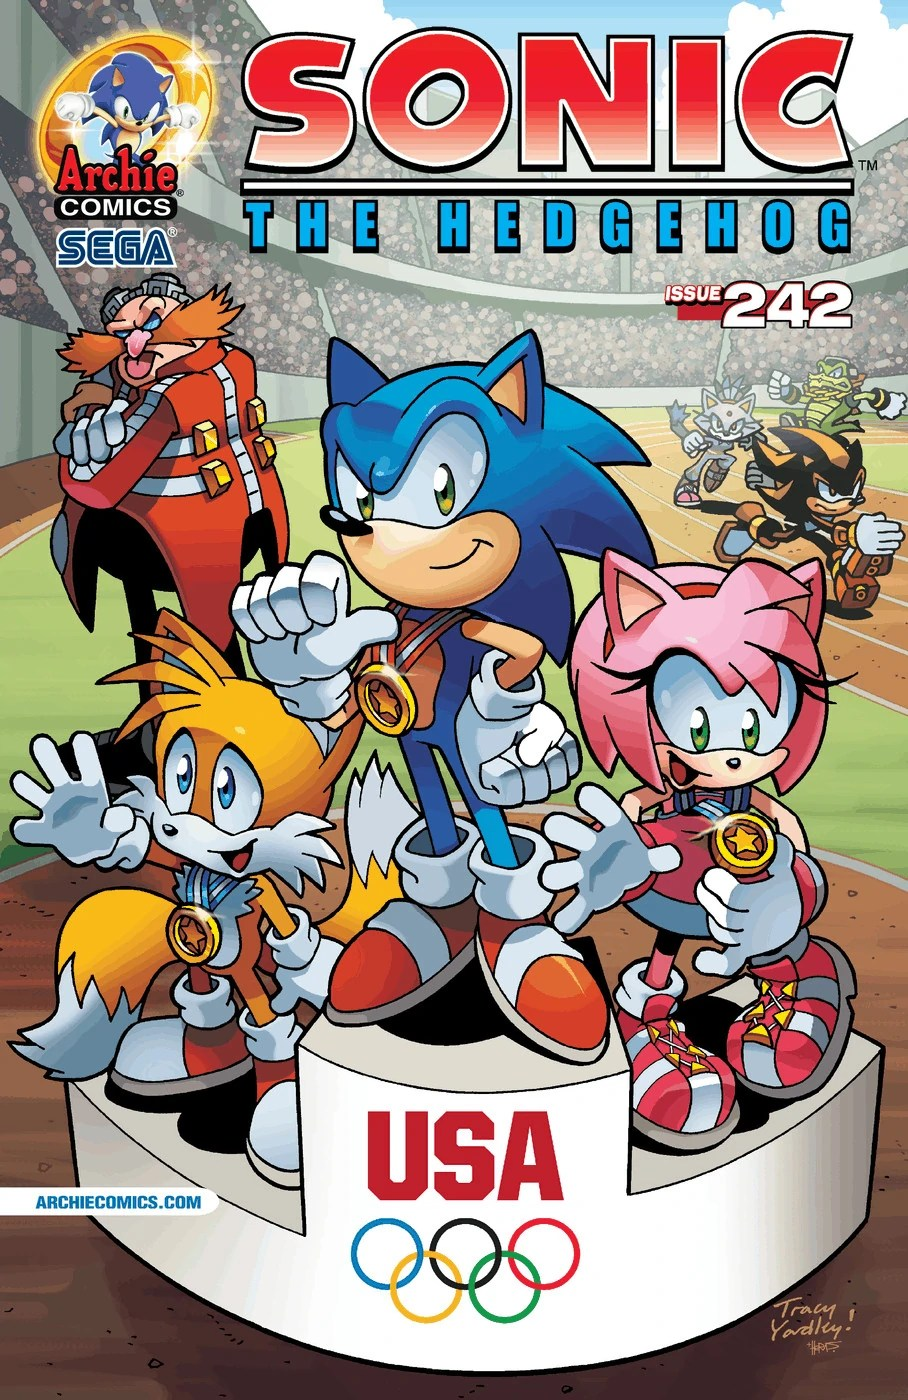 Archie Sonic the Hedgehog Issue 242  Sonic News Network